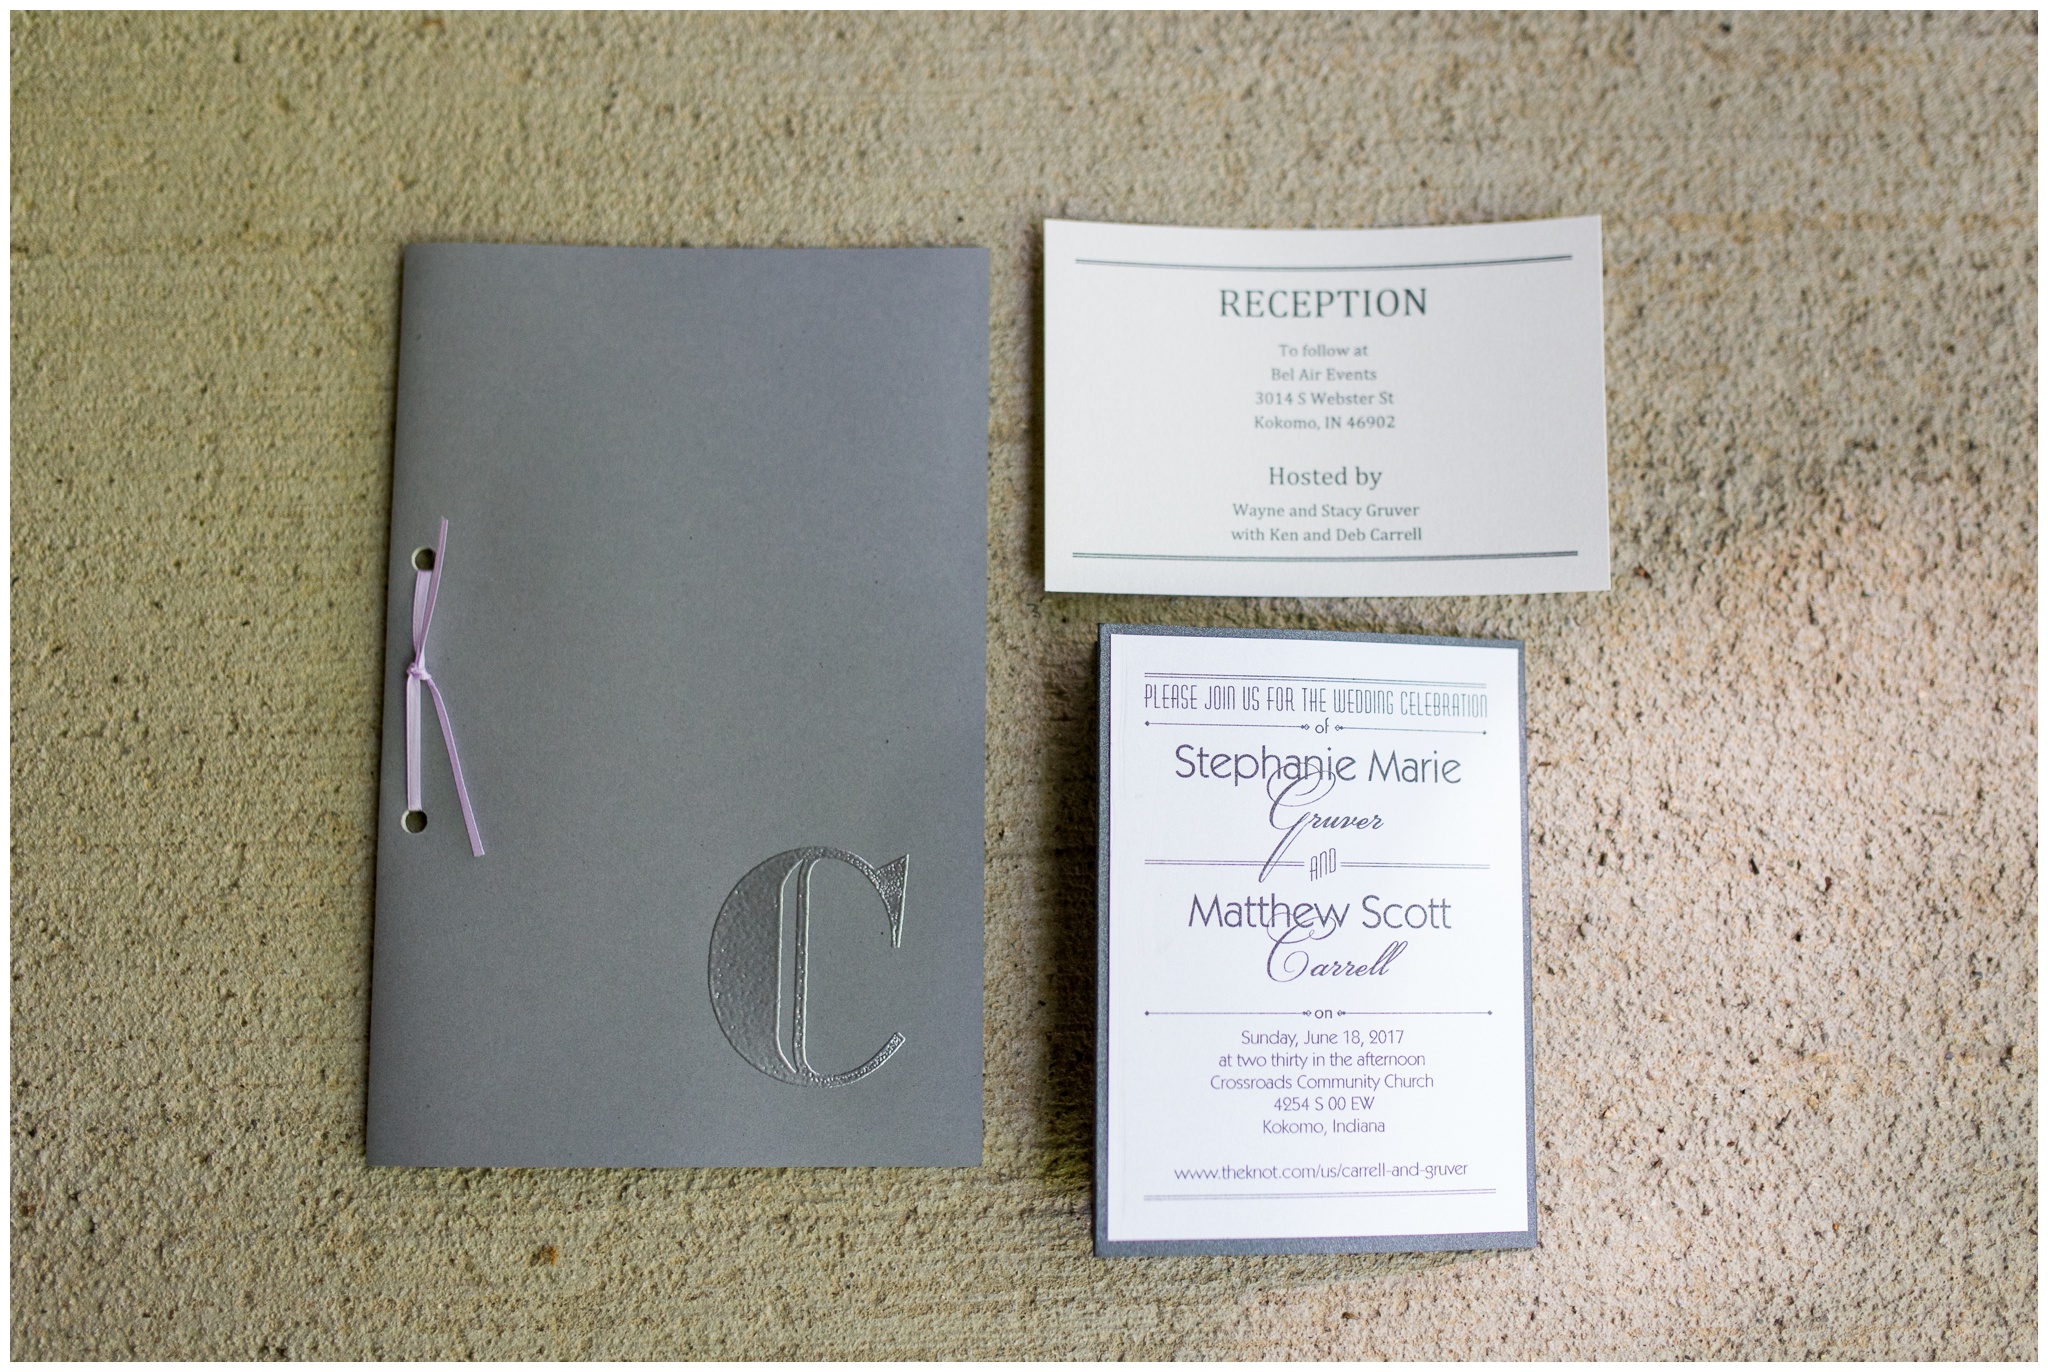 invitation and program detail photos for Kokomo Indiana Wedding